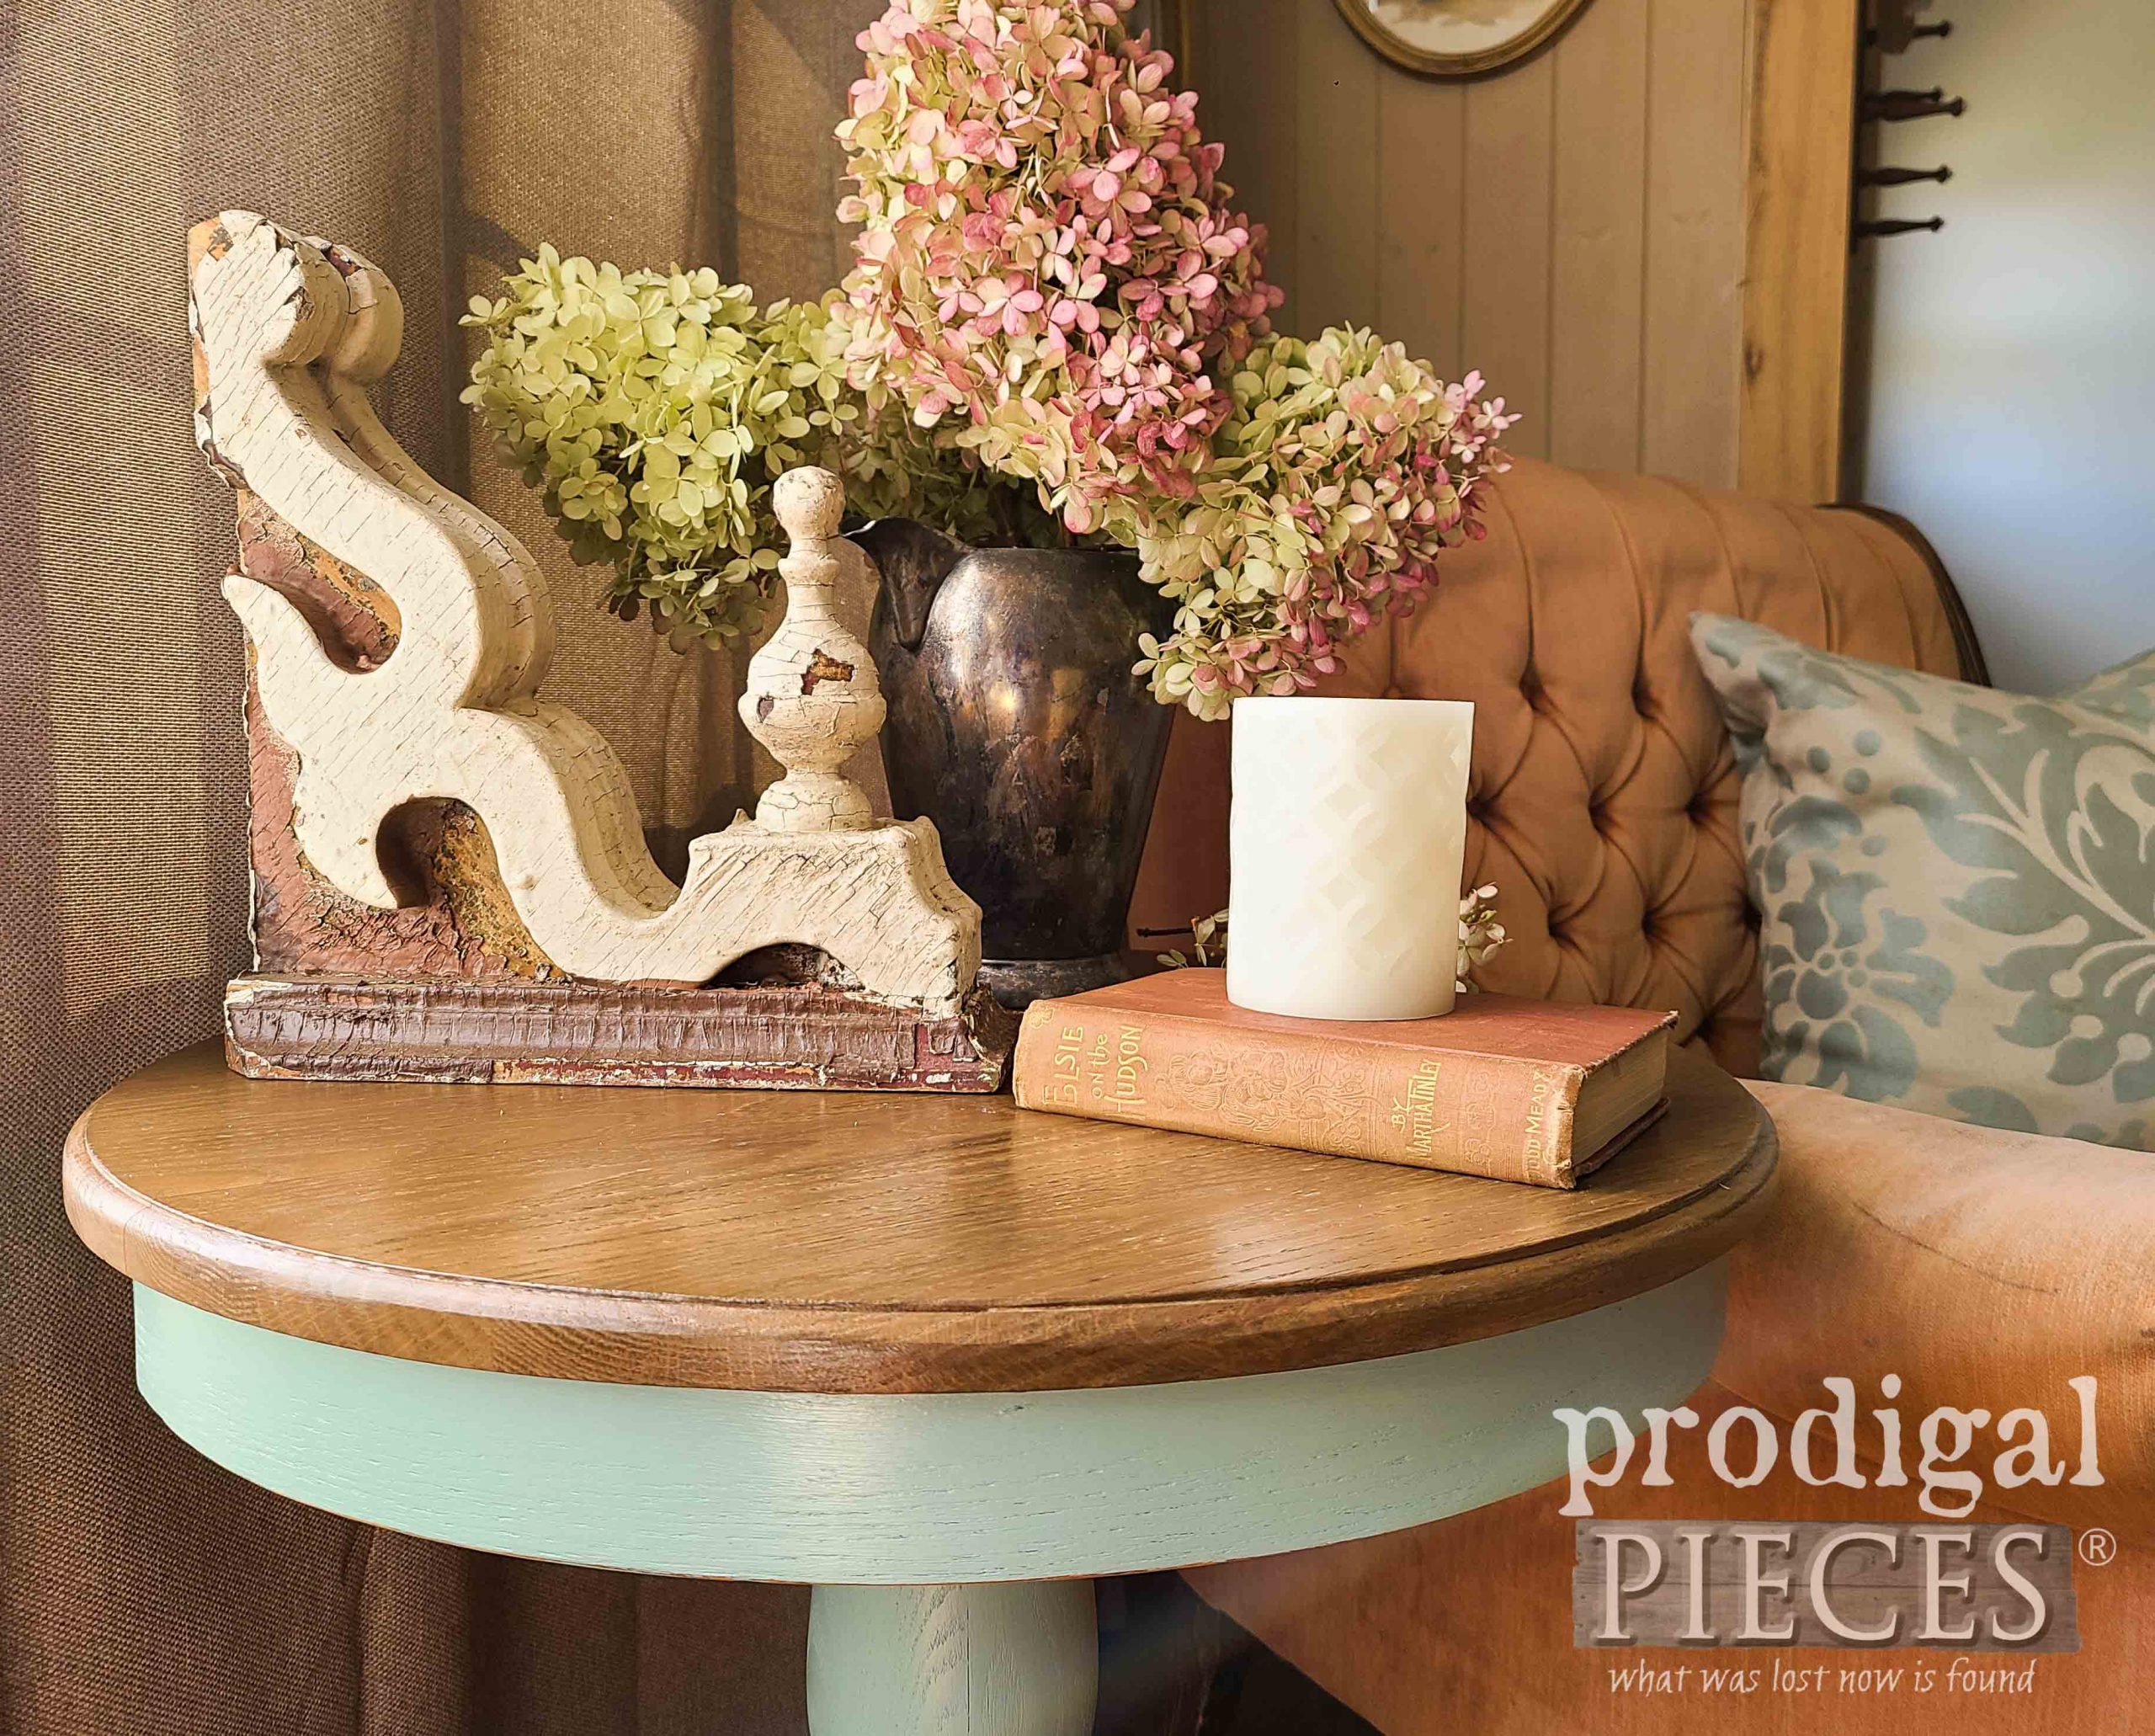 Vignette with Farmhouse Style by Larissa of Prodigal Pieces | prodigalpieces.com #prodigalpieces #diy #home #homedecor